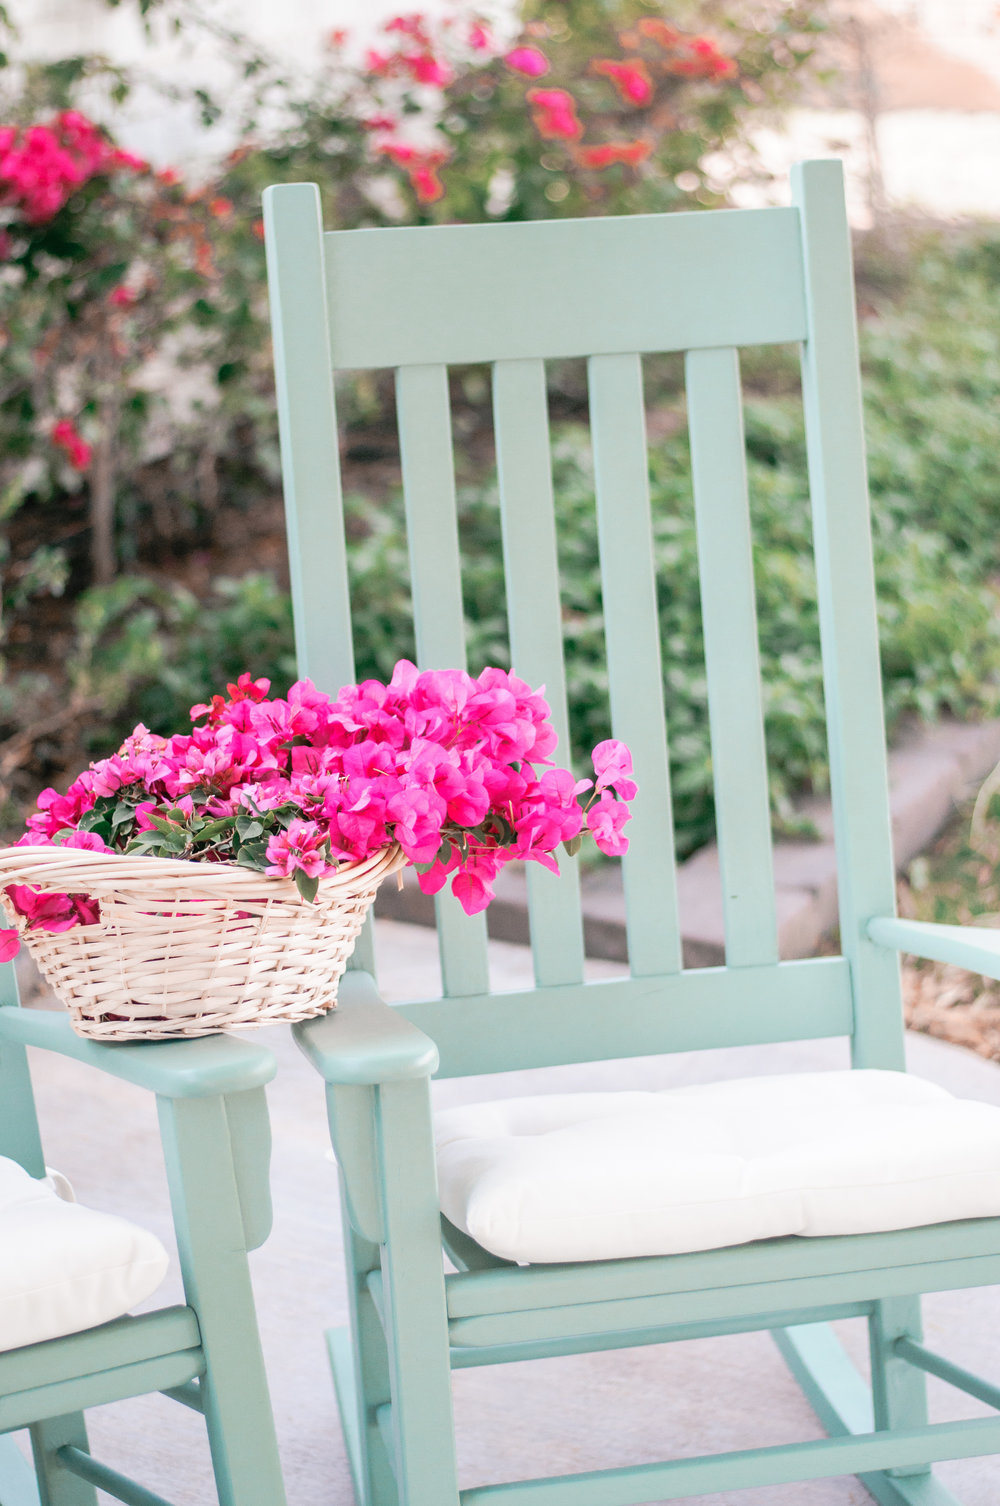 DIY Painted Wood Rocking Chair for Front Porch Outdoor Use